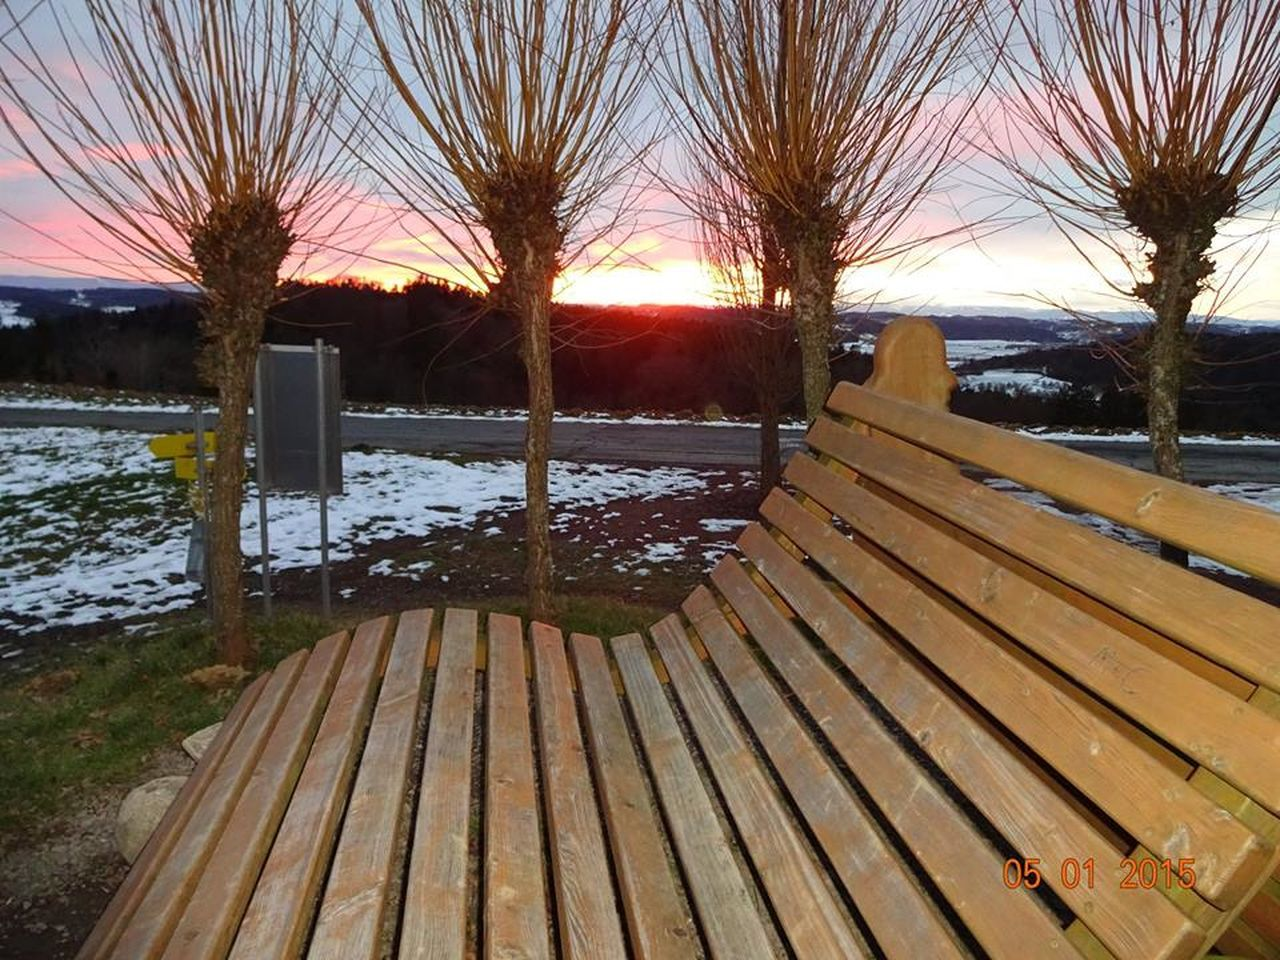 tree, wood - material, no people, outdoors, sunset, nature, tranquility, cold temperature, winter, water, bare tree, snow, day, beauty in nature, scenics, sky, close-up